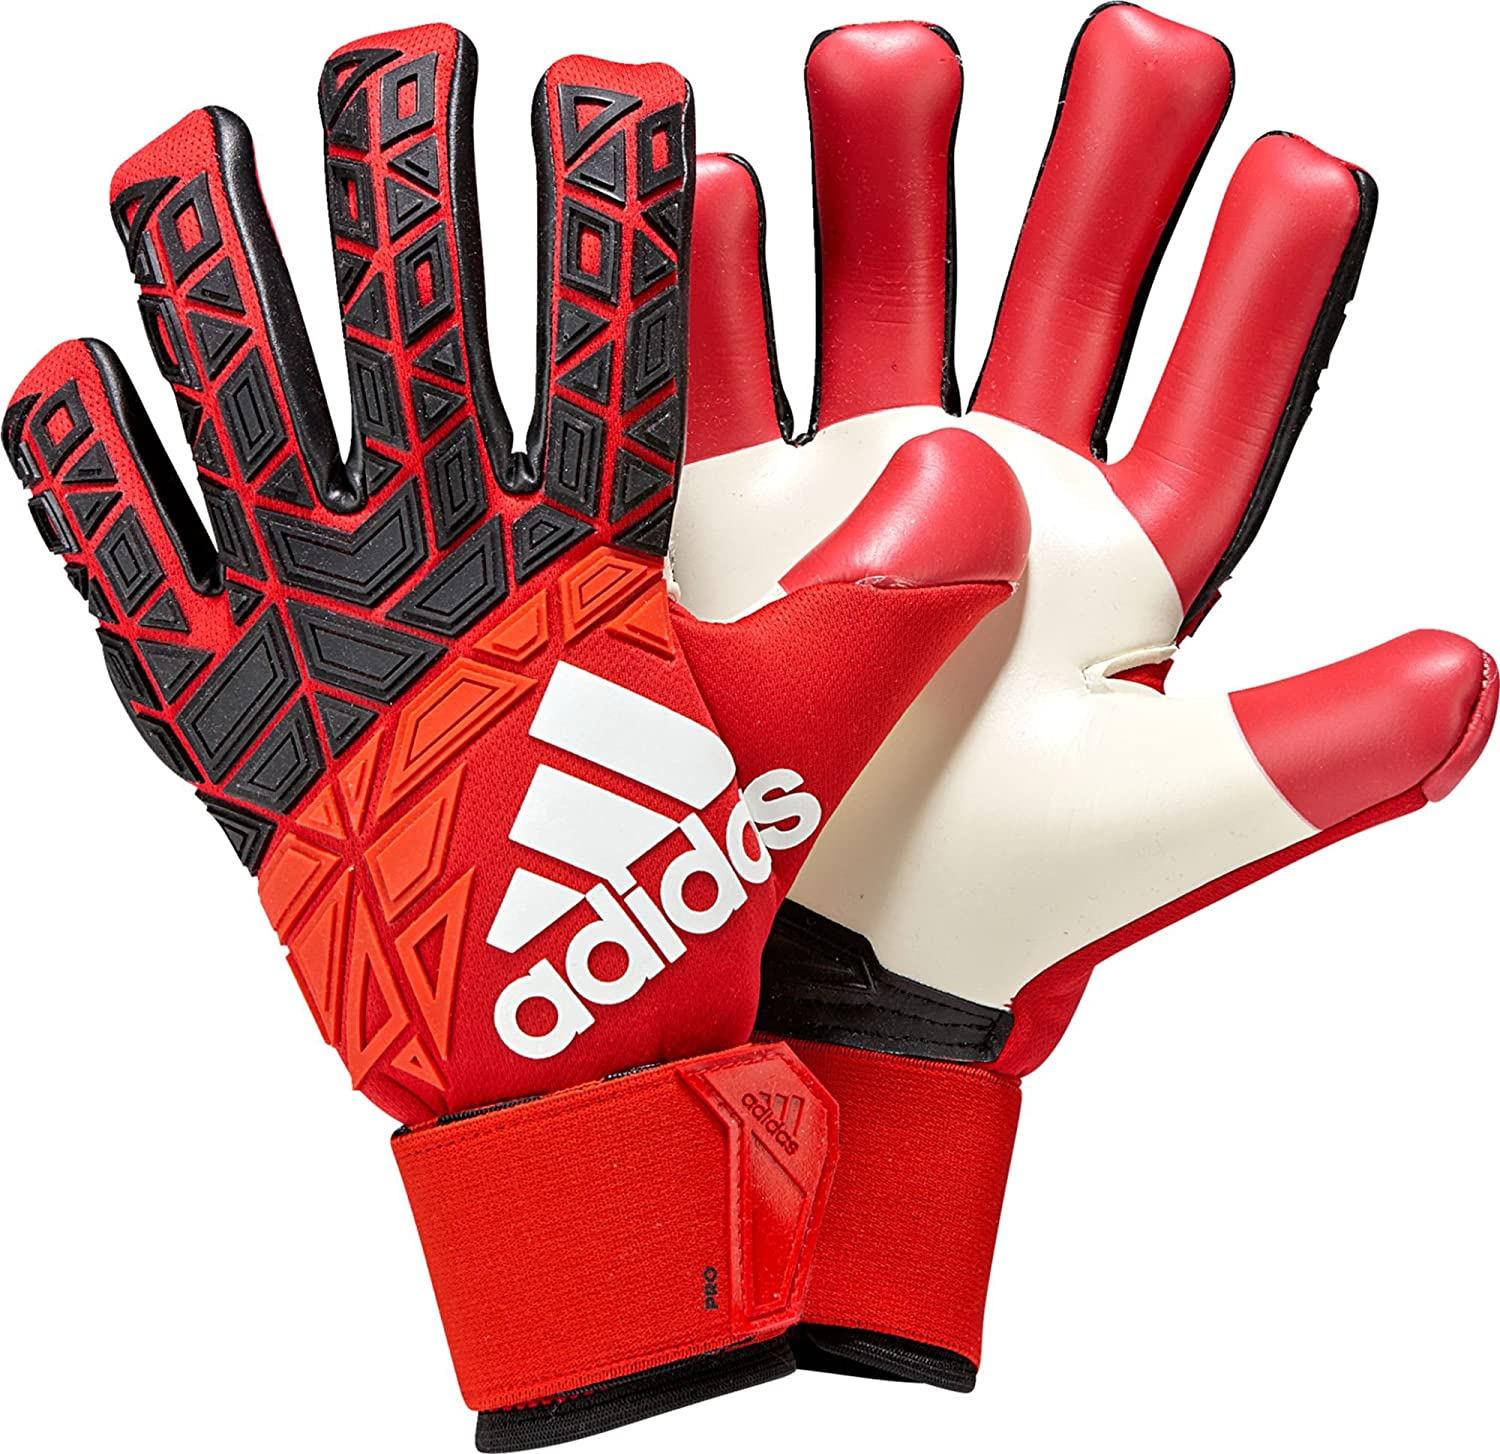 differently 5475b 10d7d Amazon.com : adidas Ace Trans Pro Goalkeeper Gloves 12 Red ...